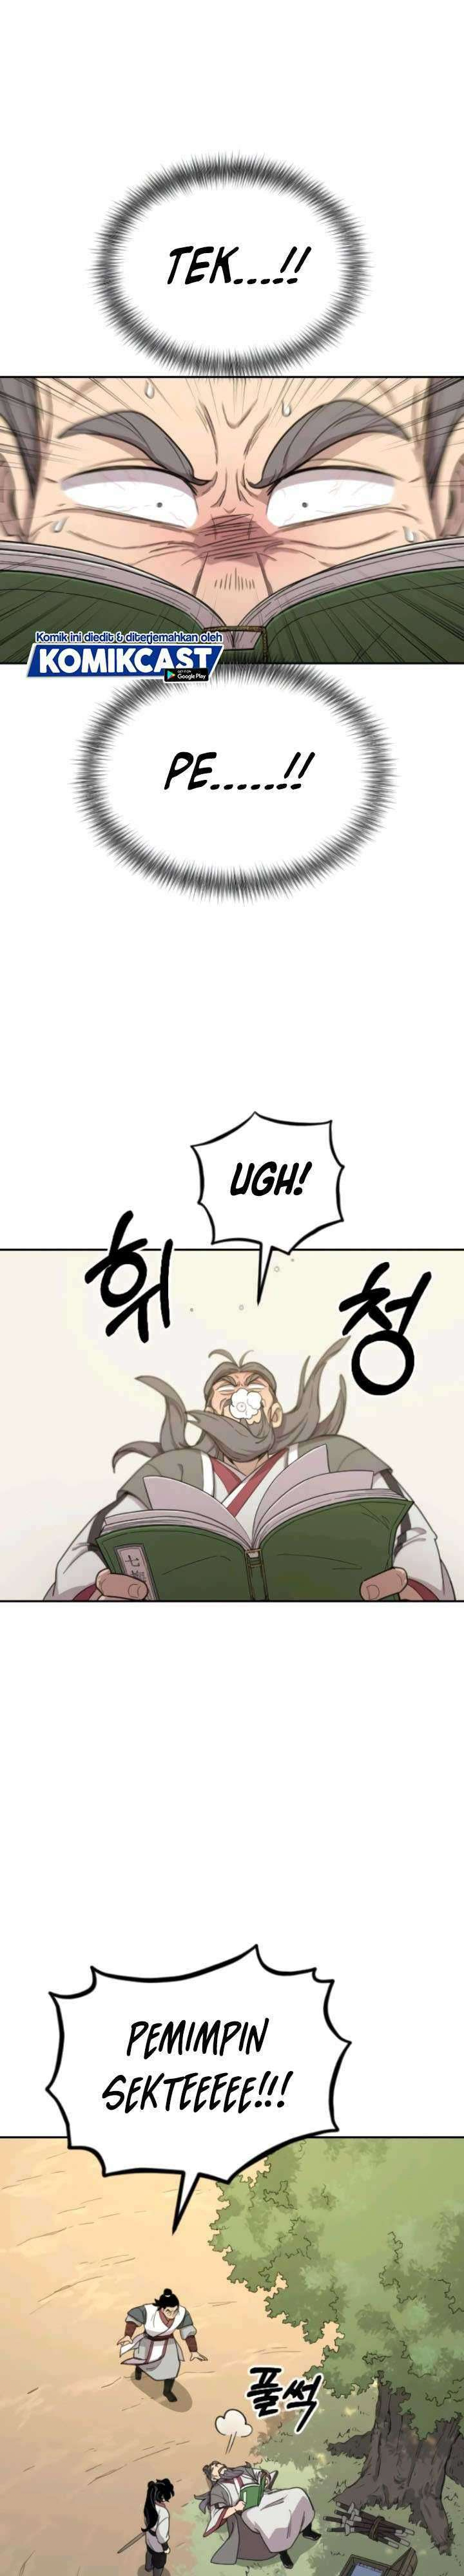 Return of the Flowery Mountain Sect Chapter 9 Bahasa Indonesia page 85